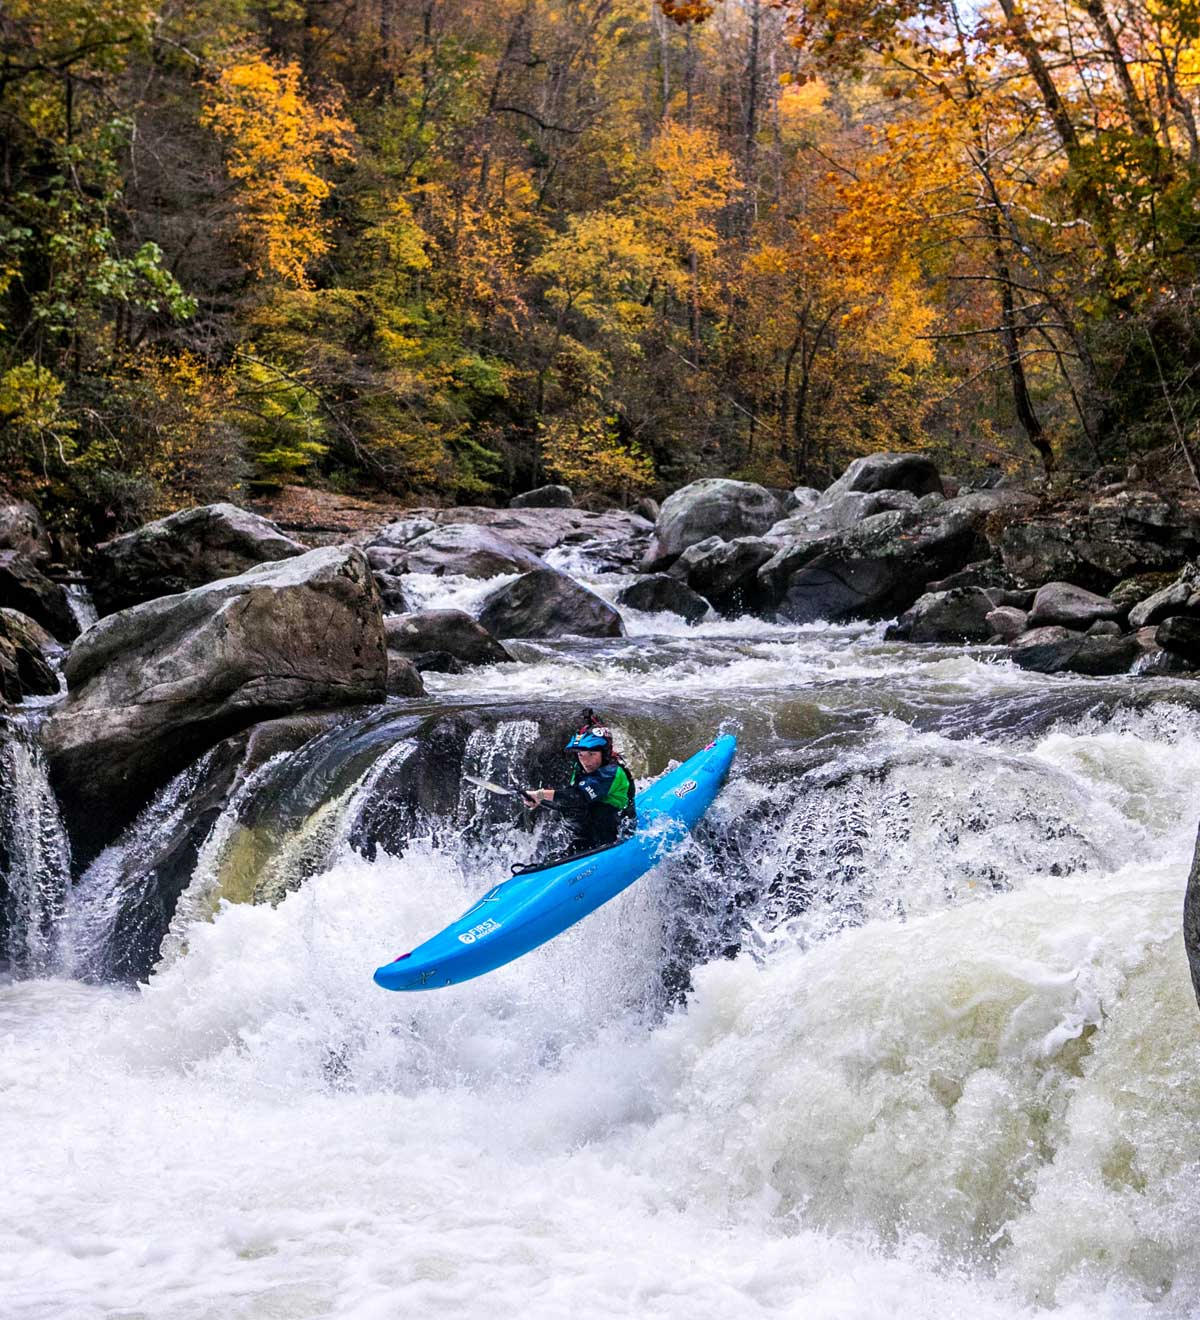 Photographer: Rob Giersch